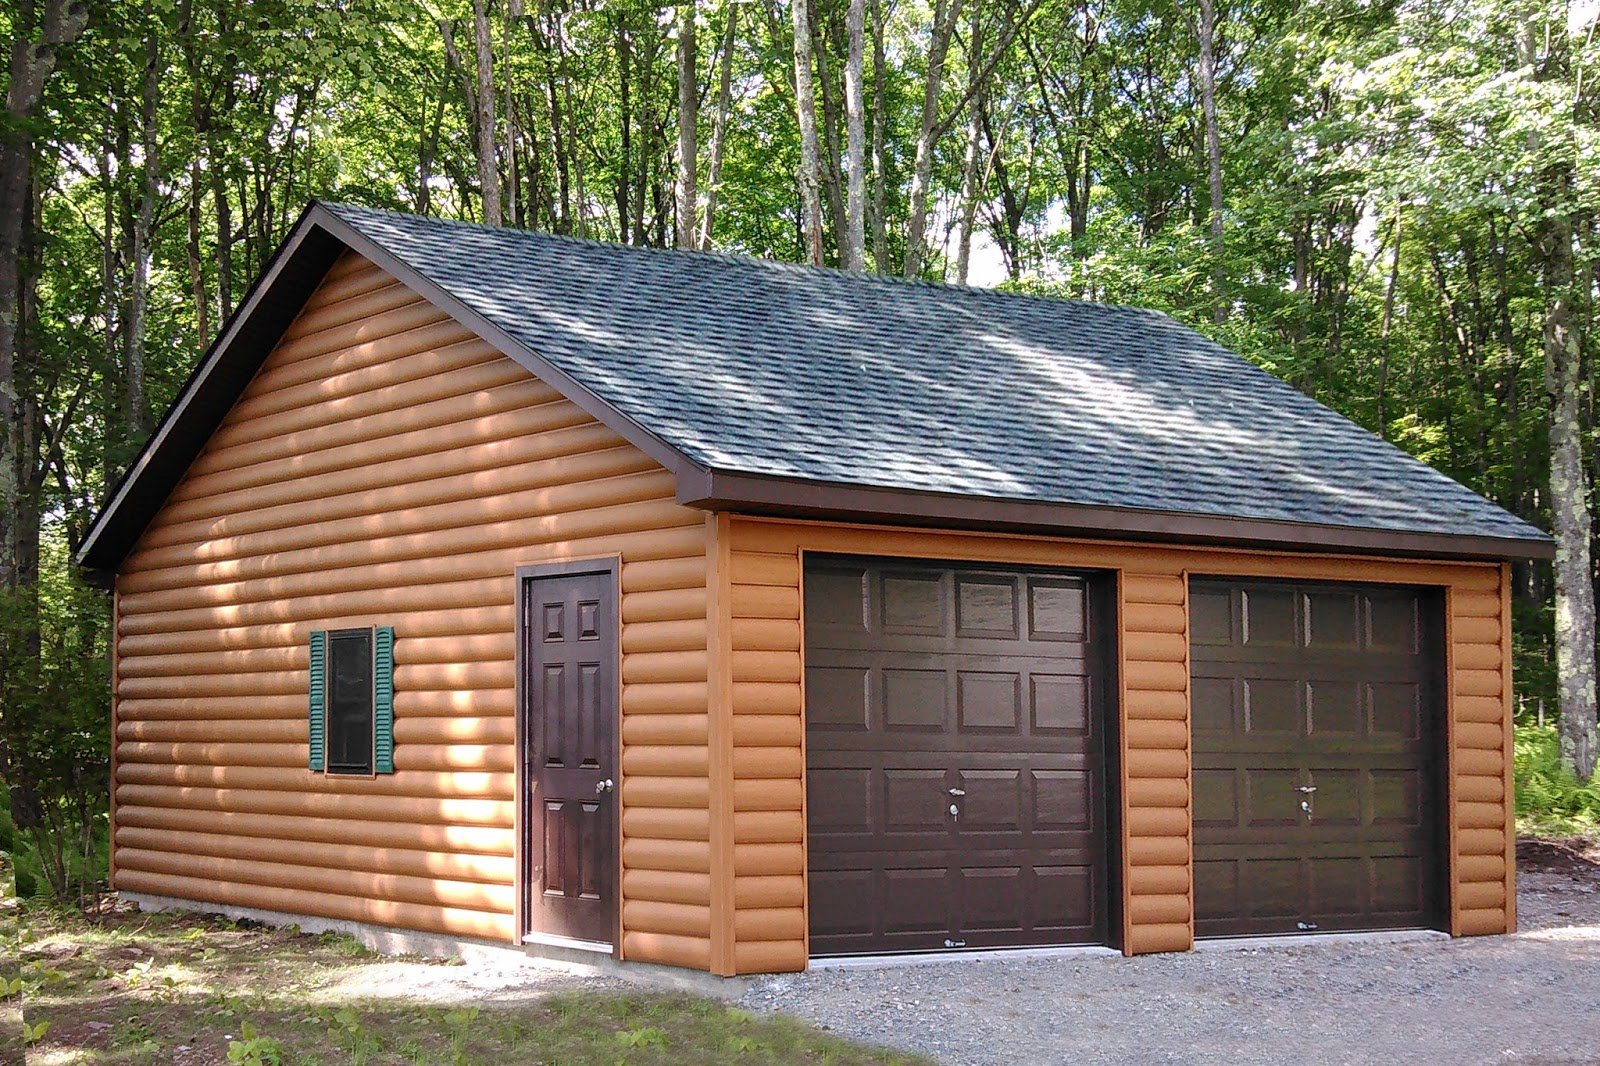 Prefab car garages for sale in pa nj ny ct de md va for Prefab 2 car garage with apartment